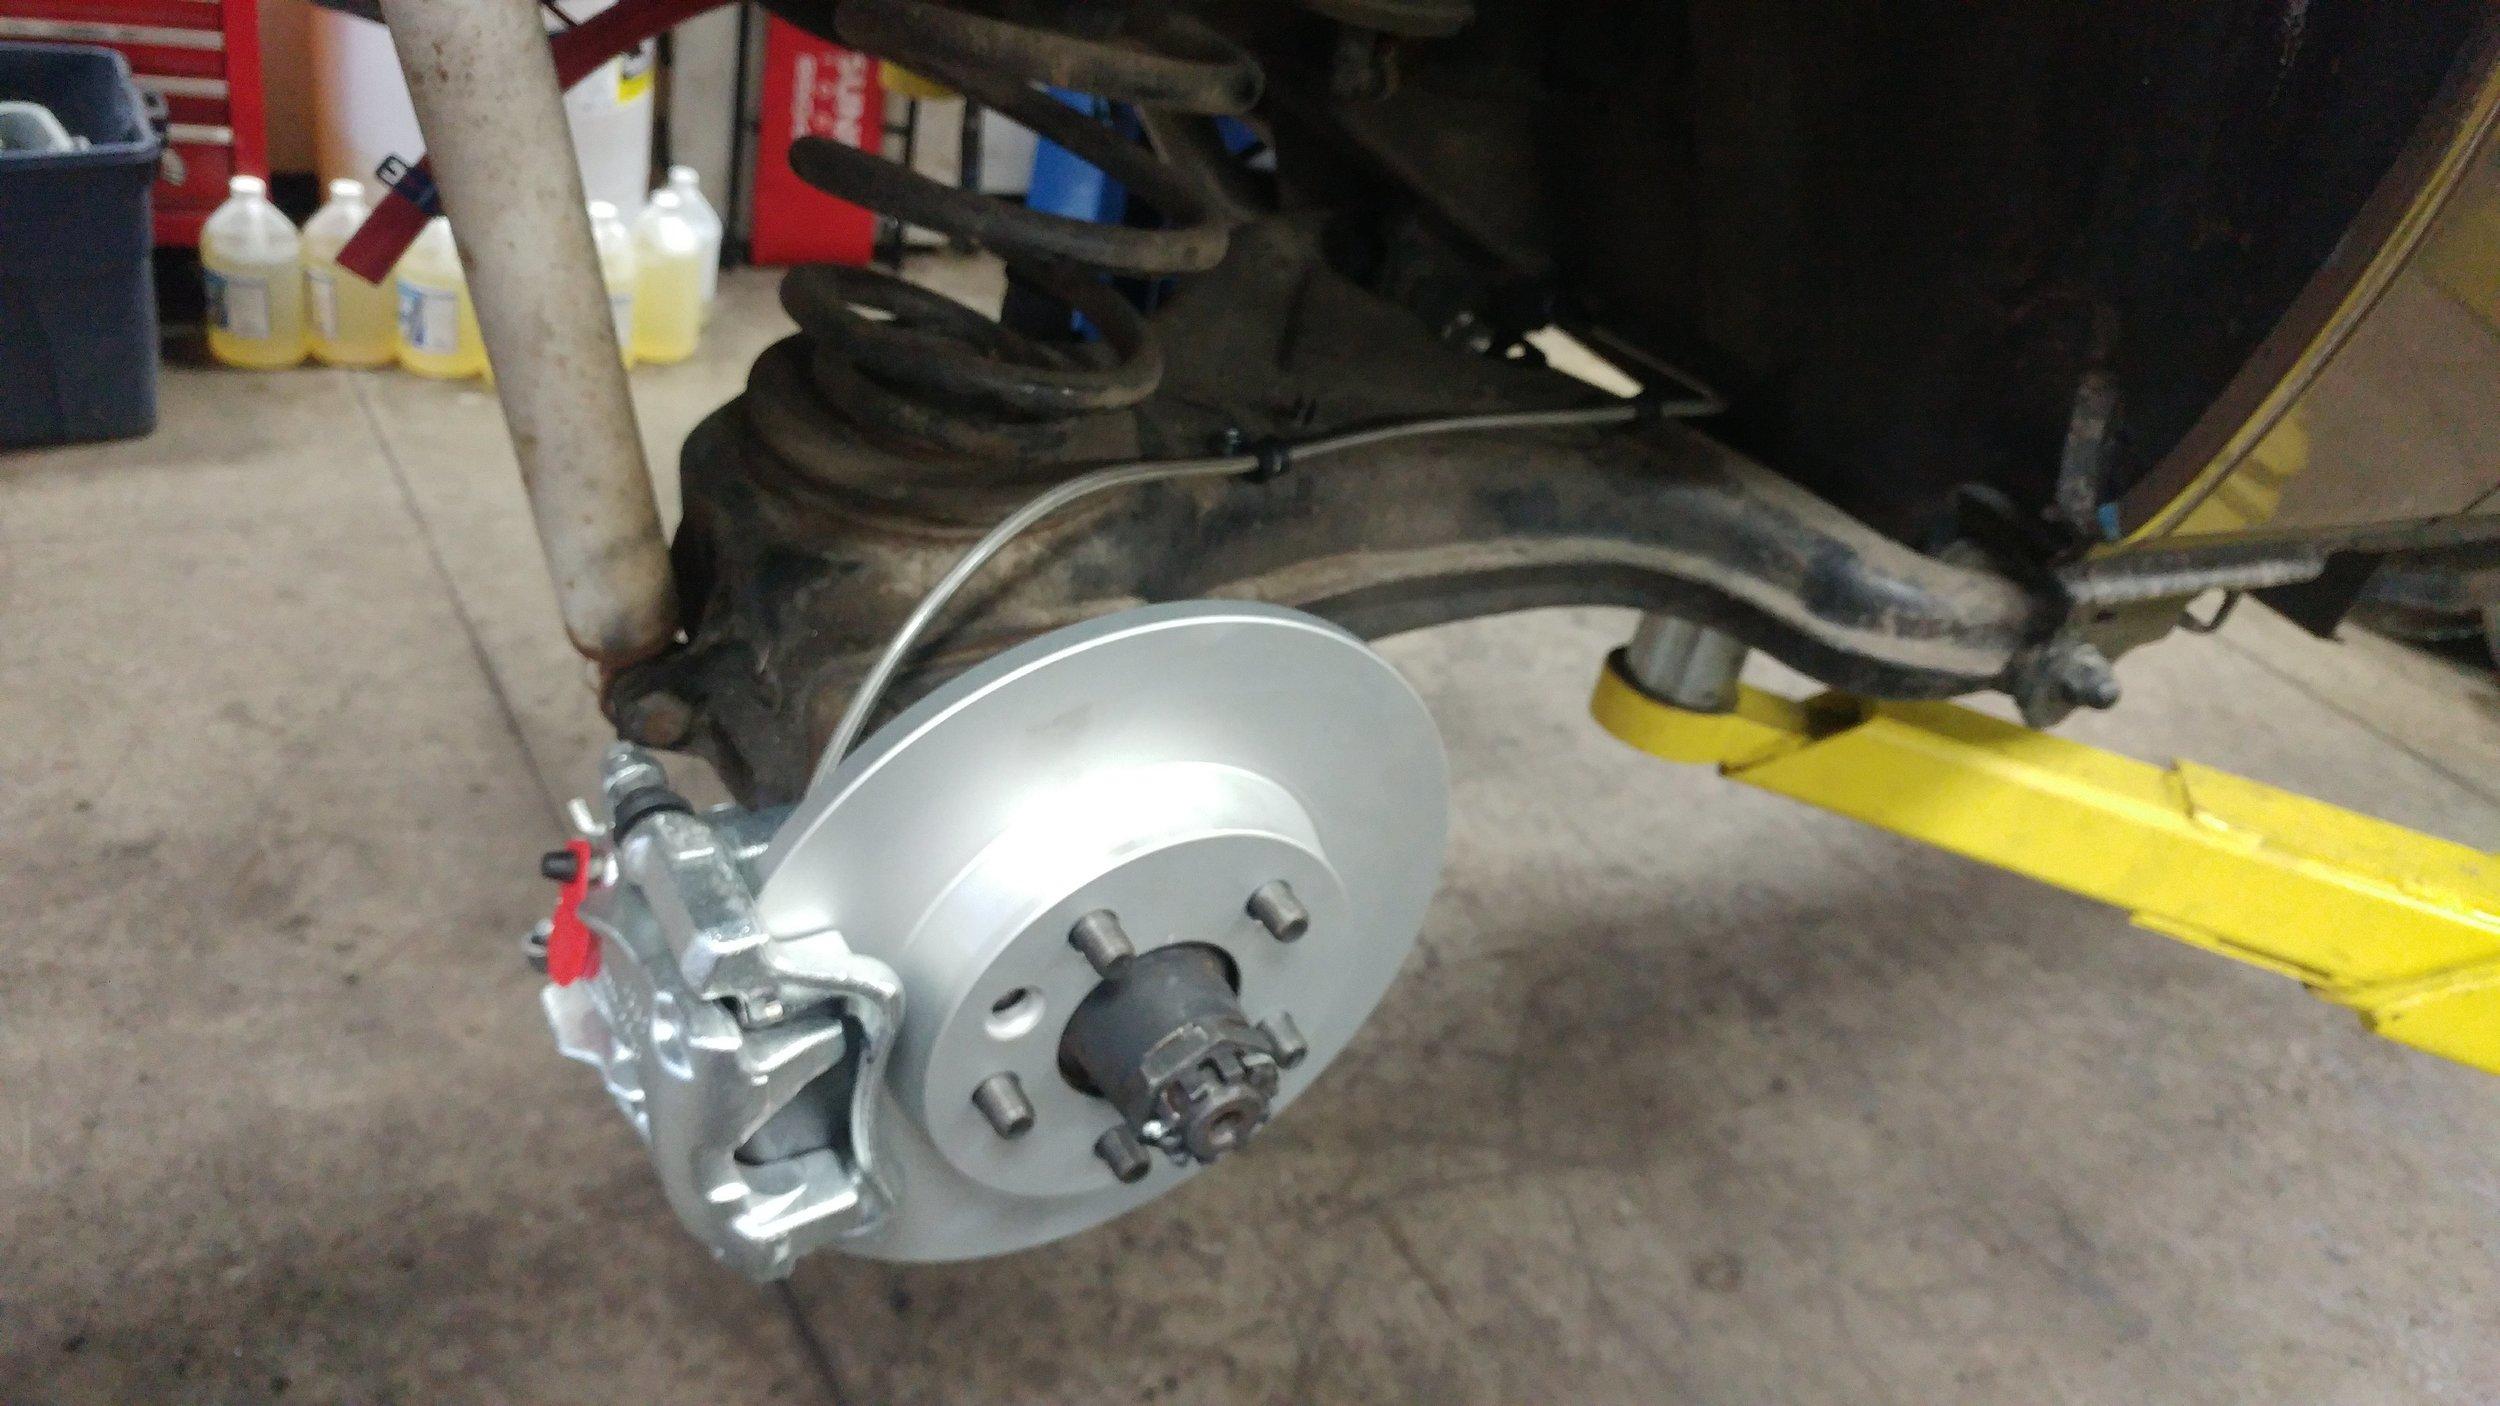 More braking power is never a bad idea…